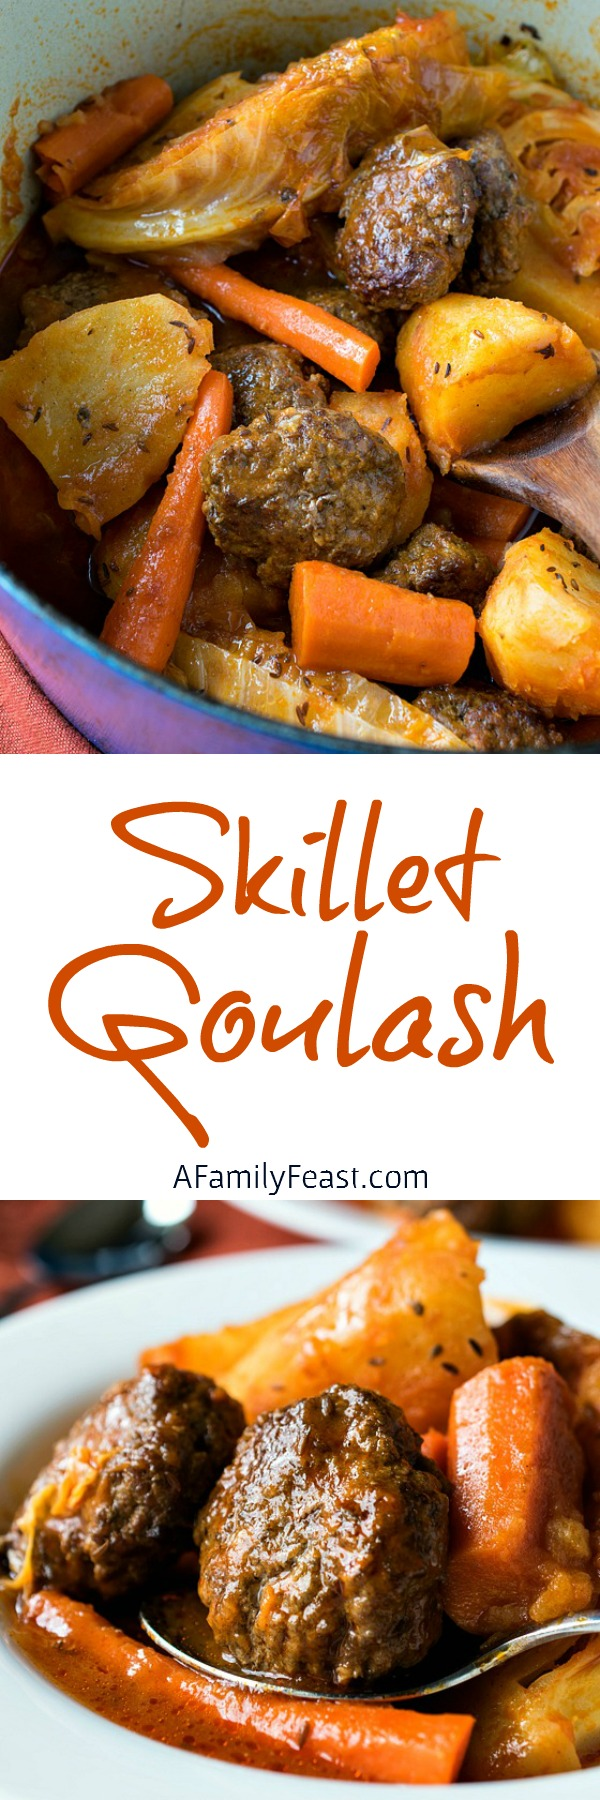 Skillet Goulash - A simple, one-pot family-style dinner with ground beef patties and root vegetables in a super flavorful sauce. Easy and delicious!